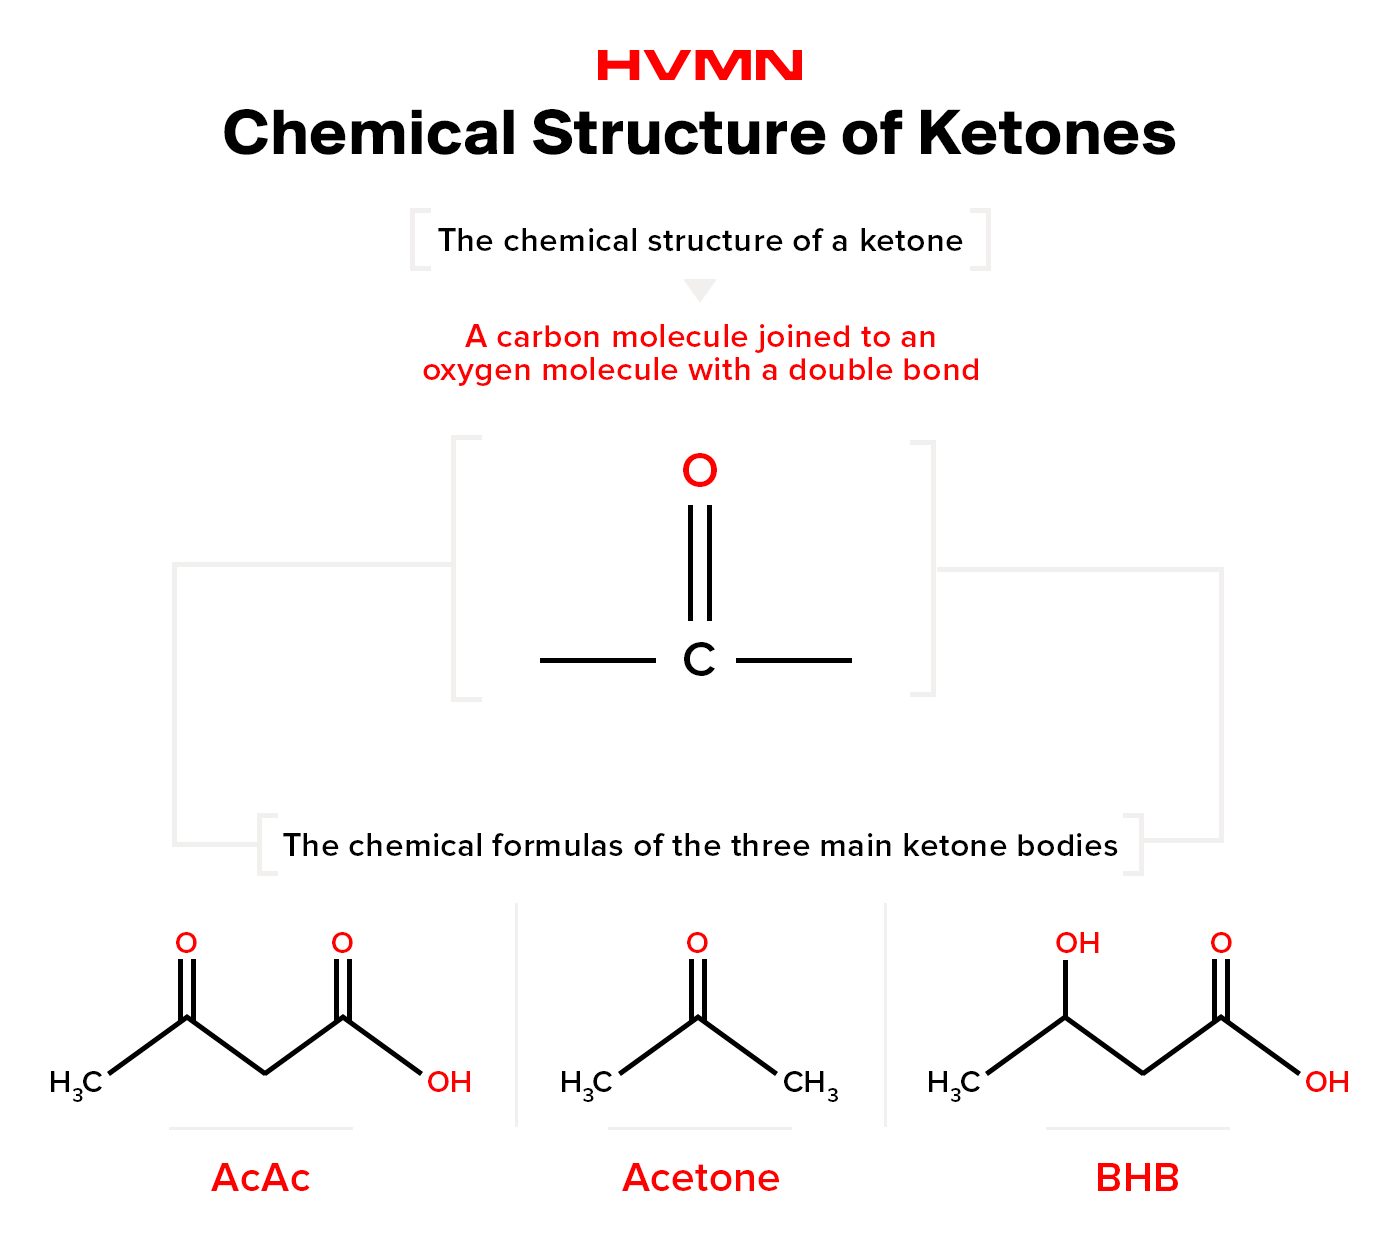 The different chemical structures of ketones represented by the elements and their chemical bonds